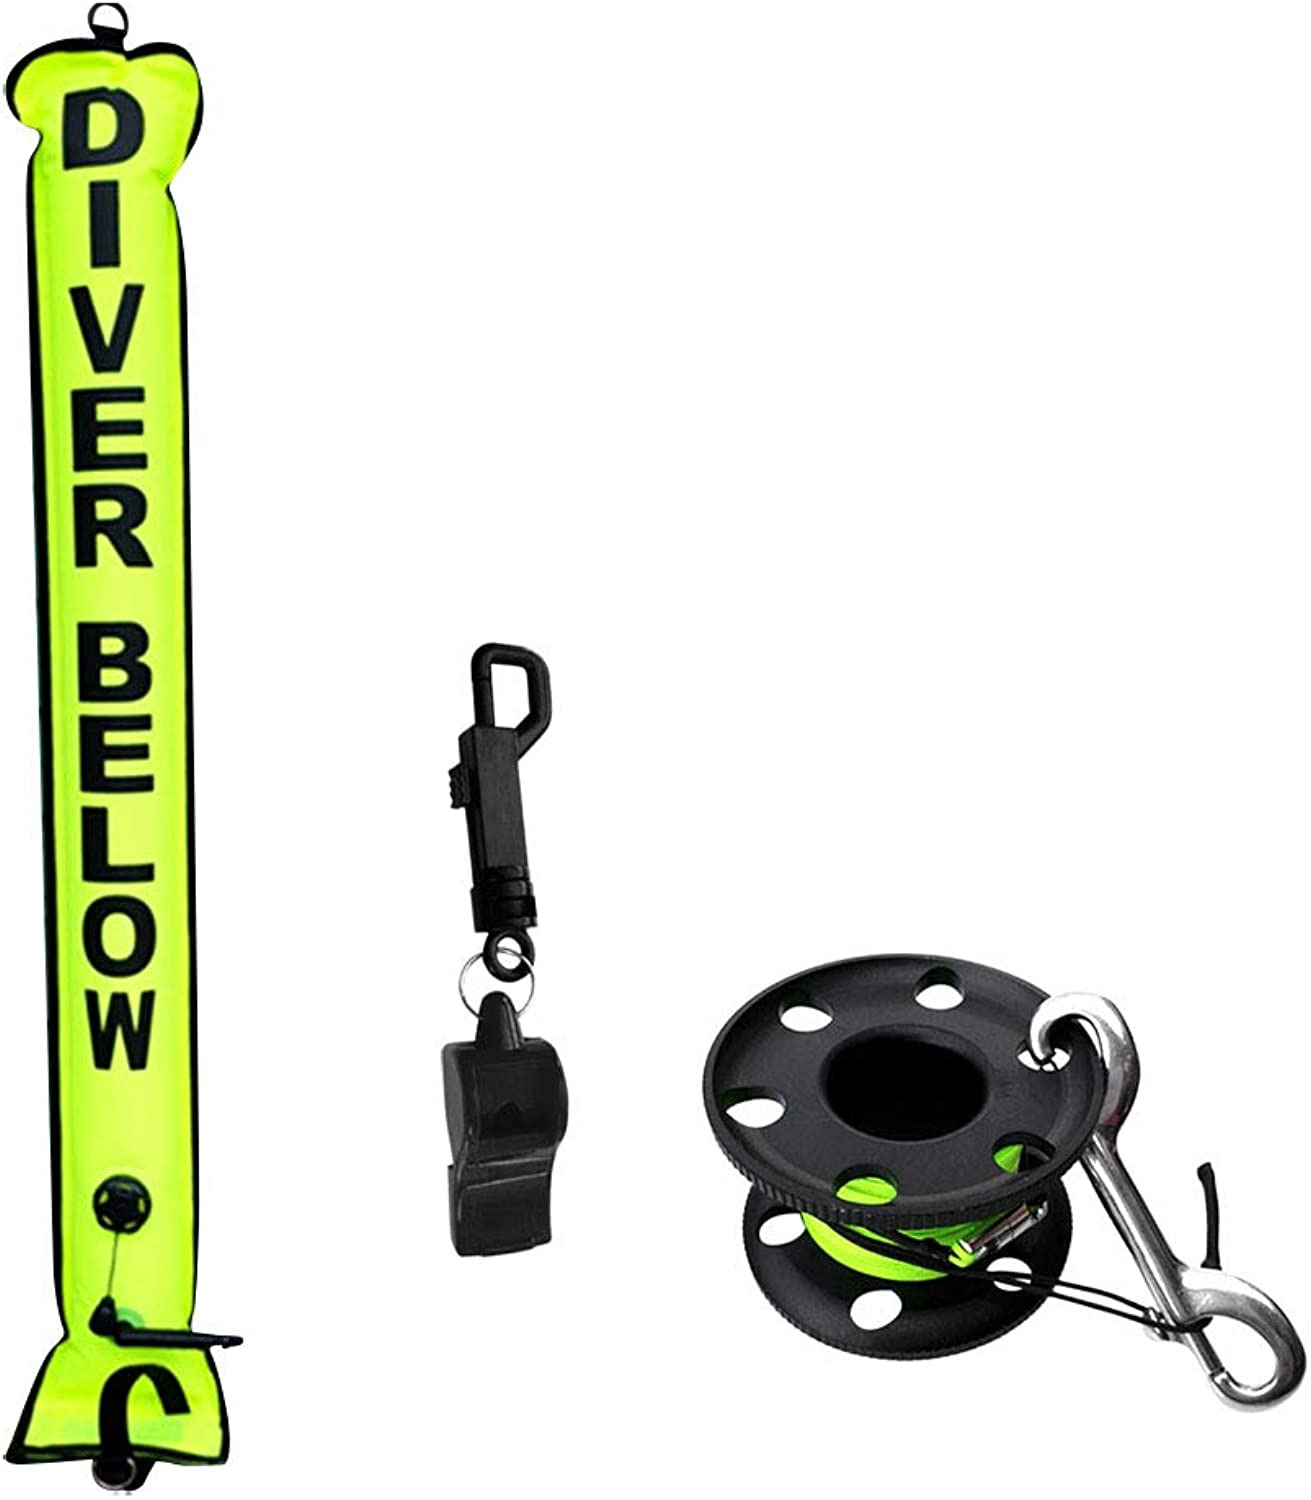 DYNWAVE Dive Safety Equipment, 4ft SMB Signal Tube Inflatable Float + Finger Reel Line Clip + Whistle for Technical Scuba Diving, High Visibility